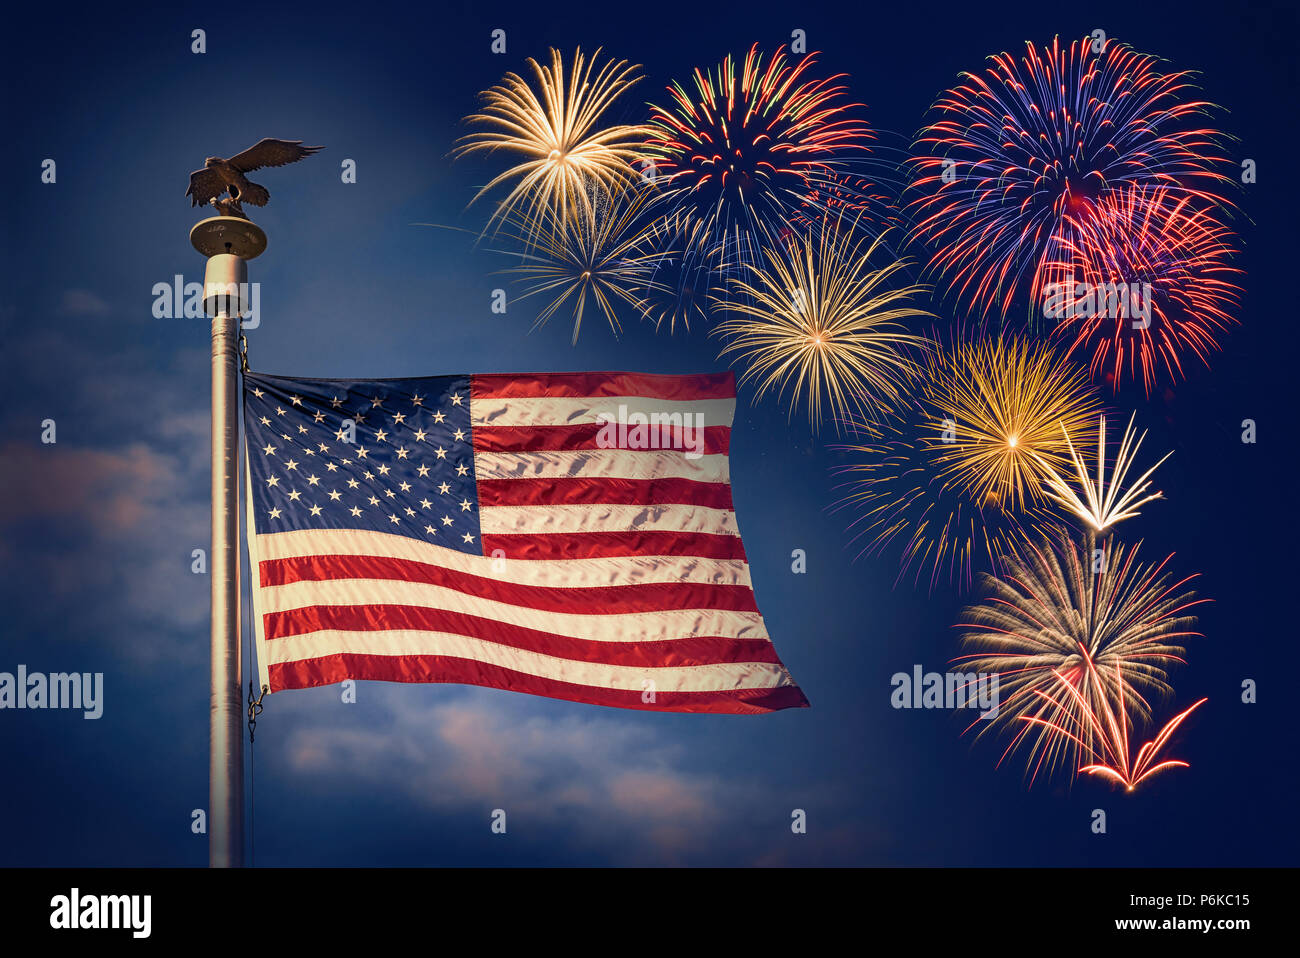 Festive fireworks display with American flag waving against the dark blue night sky. Concept for 4th of July celebration. - Stock Image